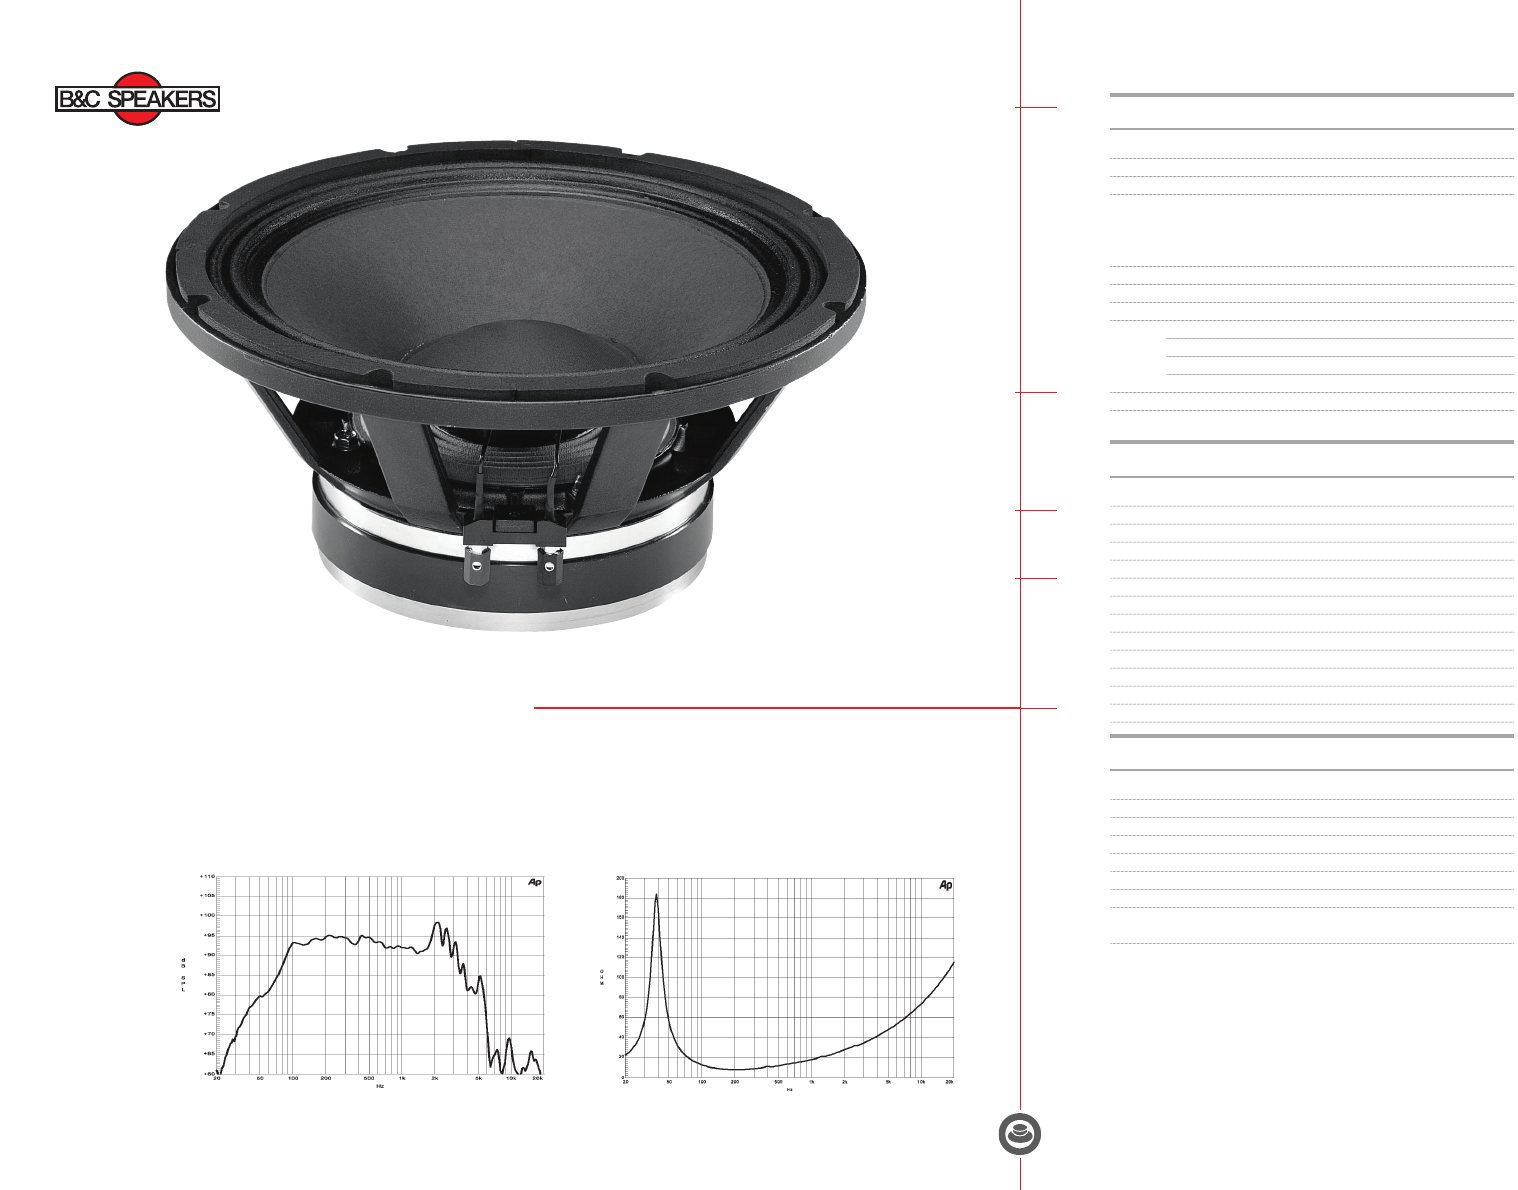 B&C Speakers 12 PZ 32 Speaker User Manual